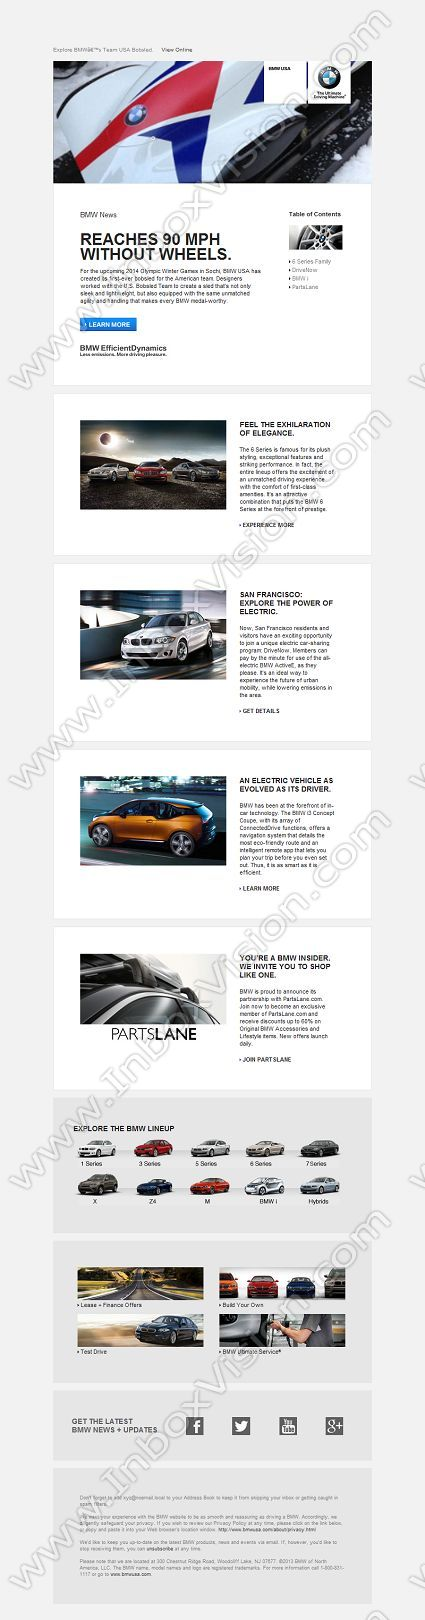 Bmw Inspirational Email Design With Images Email Design Email